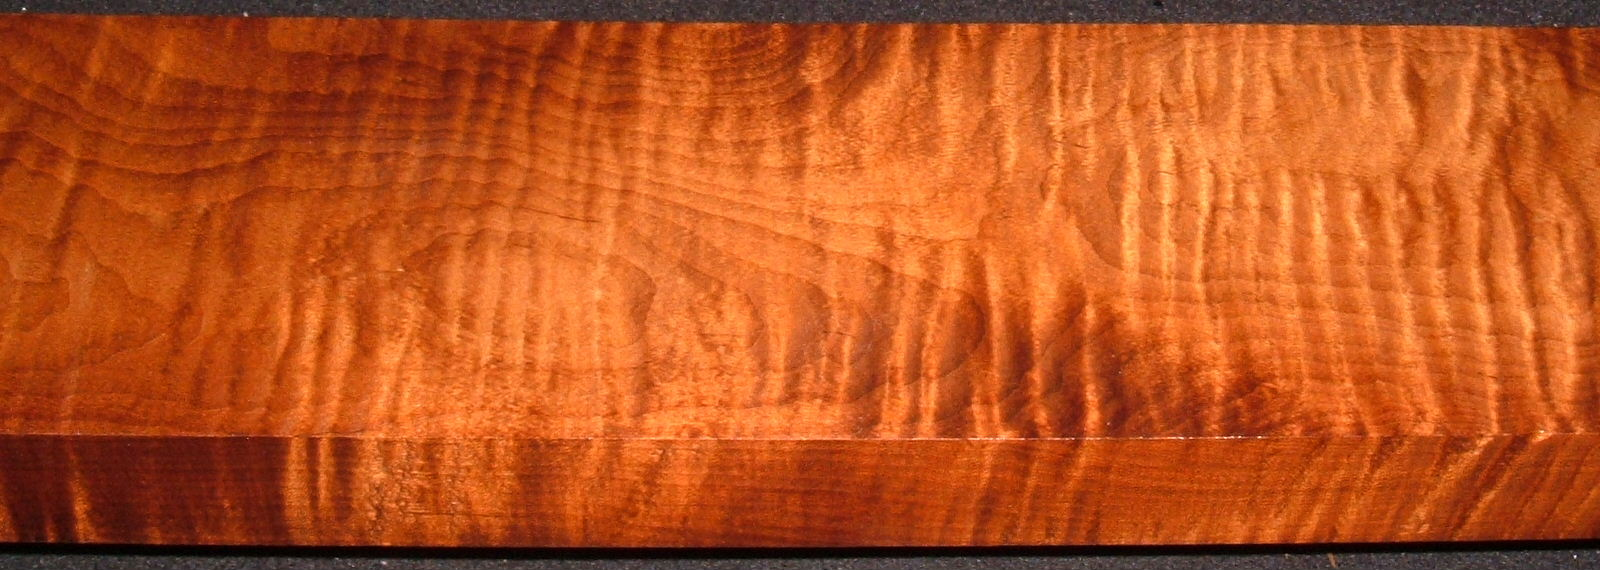 RM2004-98, 1-7/16x5x45, Roasted Torrefied Curly, Tiger Maple